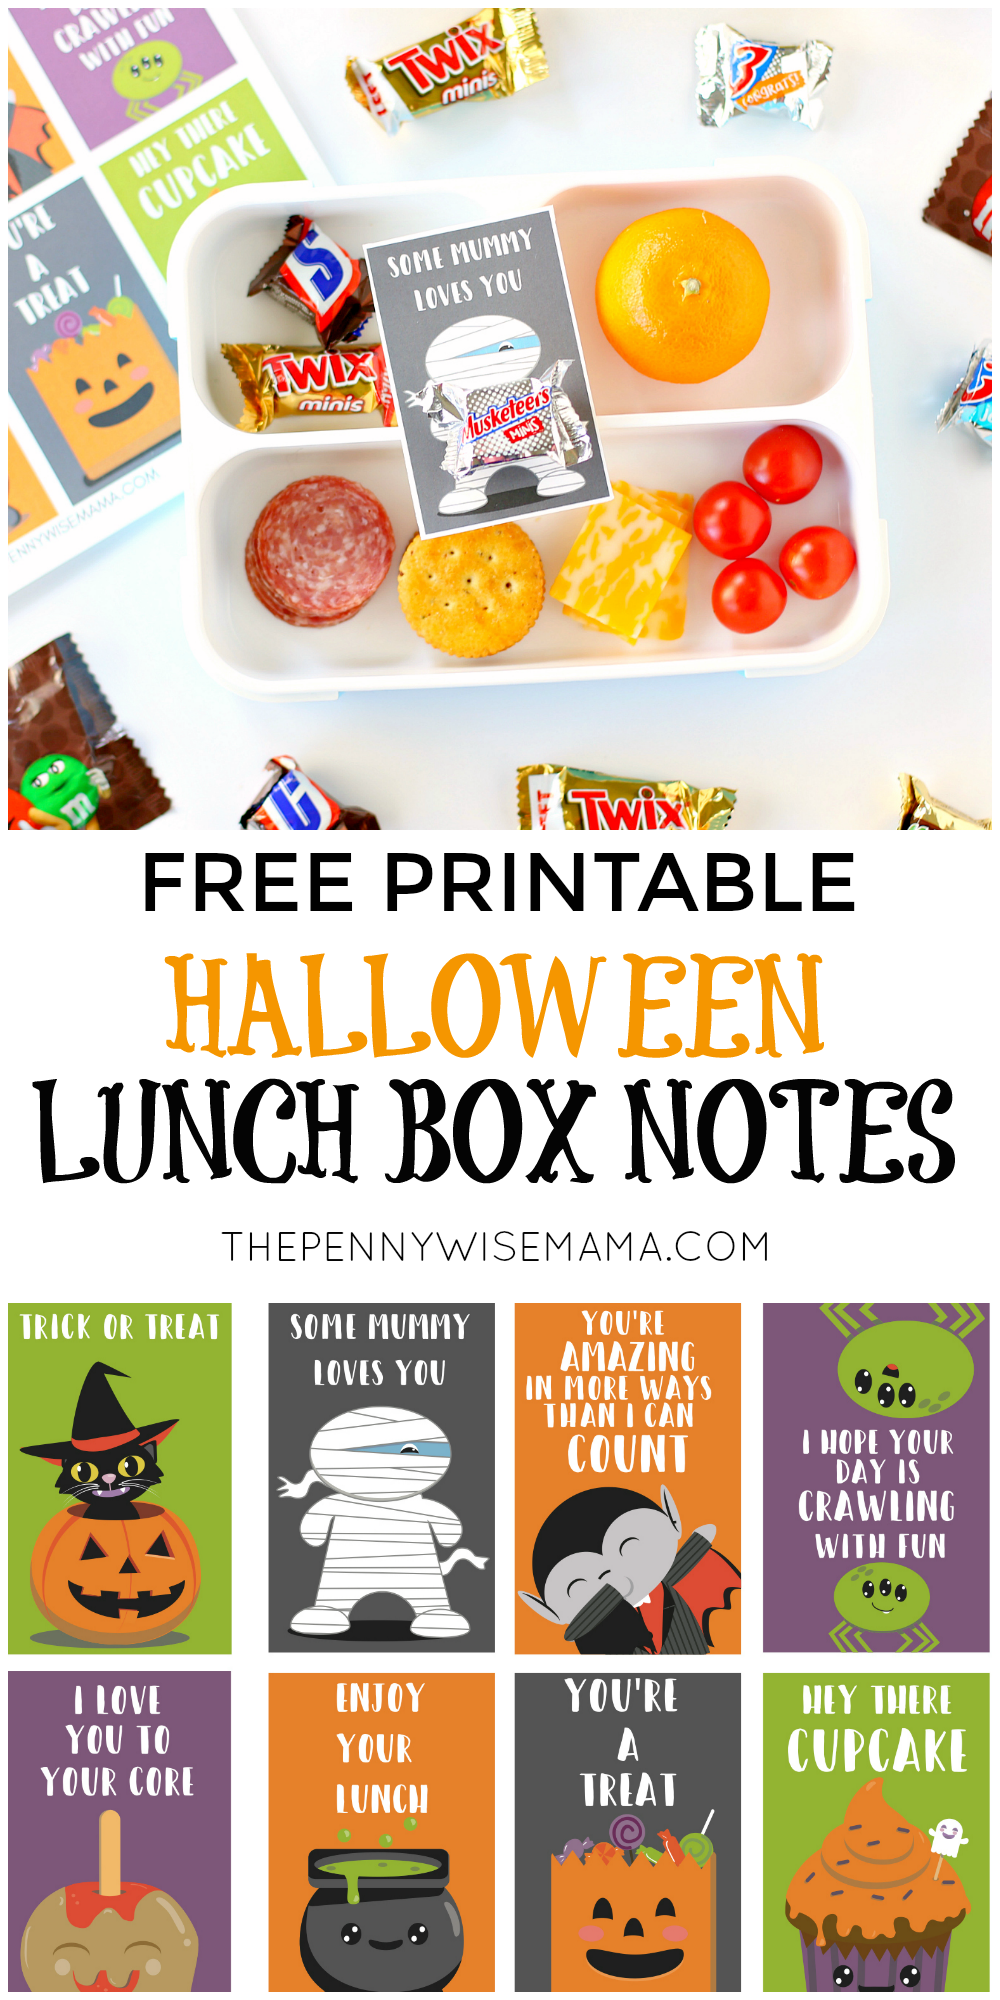 Halloween Lunch Box Notes - Free Halloween Printables